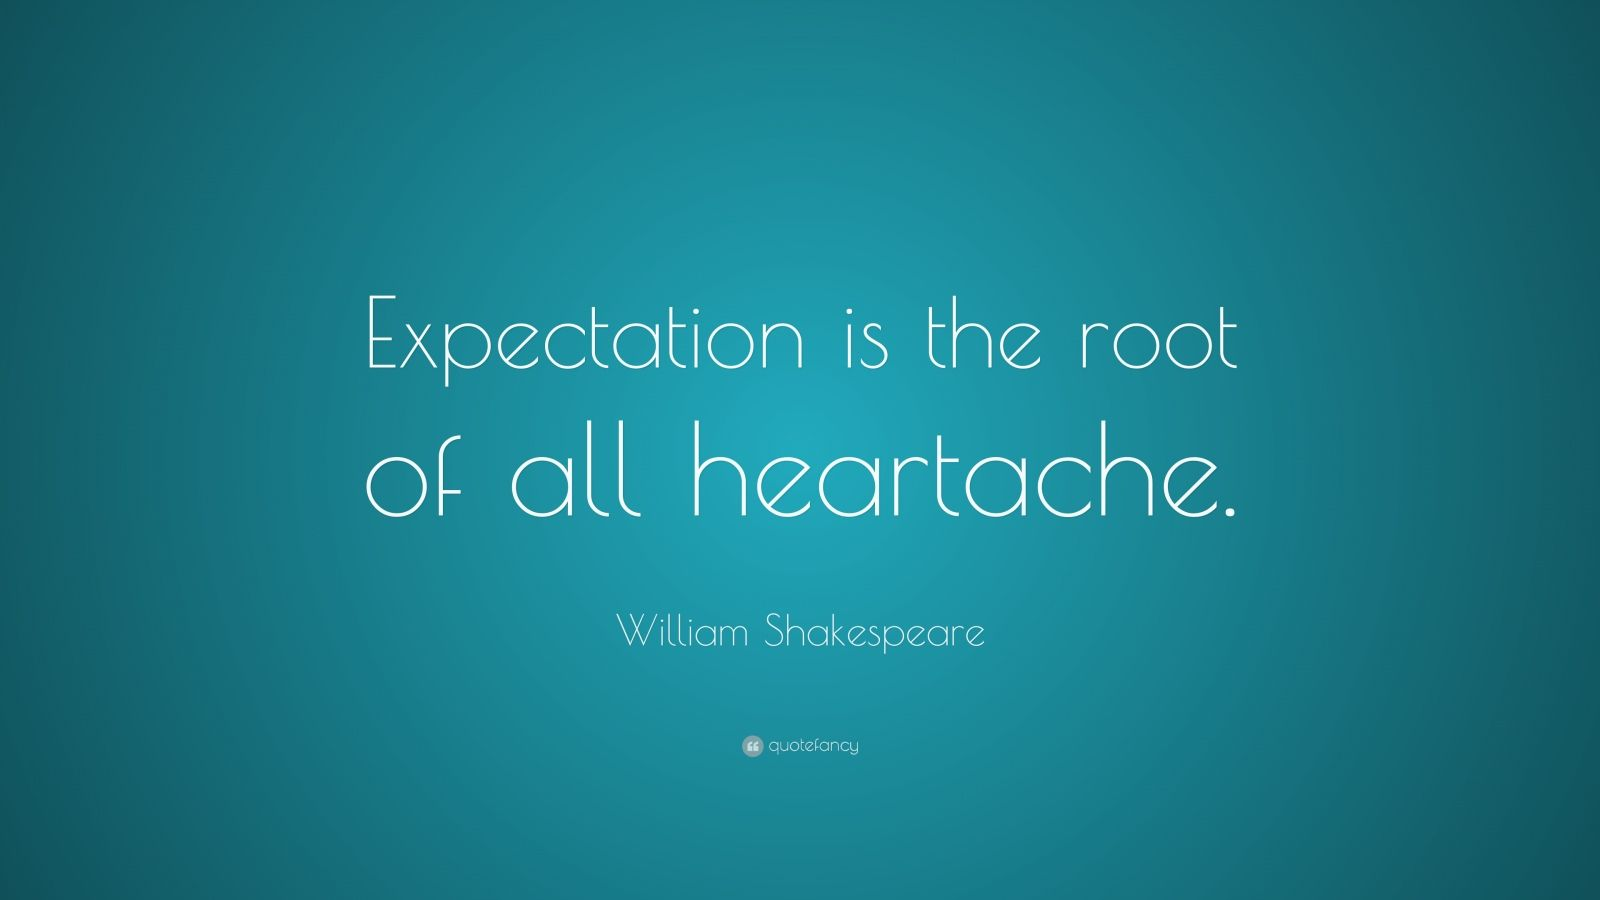 Quotes Shakespeare William Shakespeare Quotes 100 Wallpapers  Quotefancy